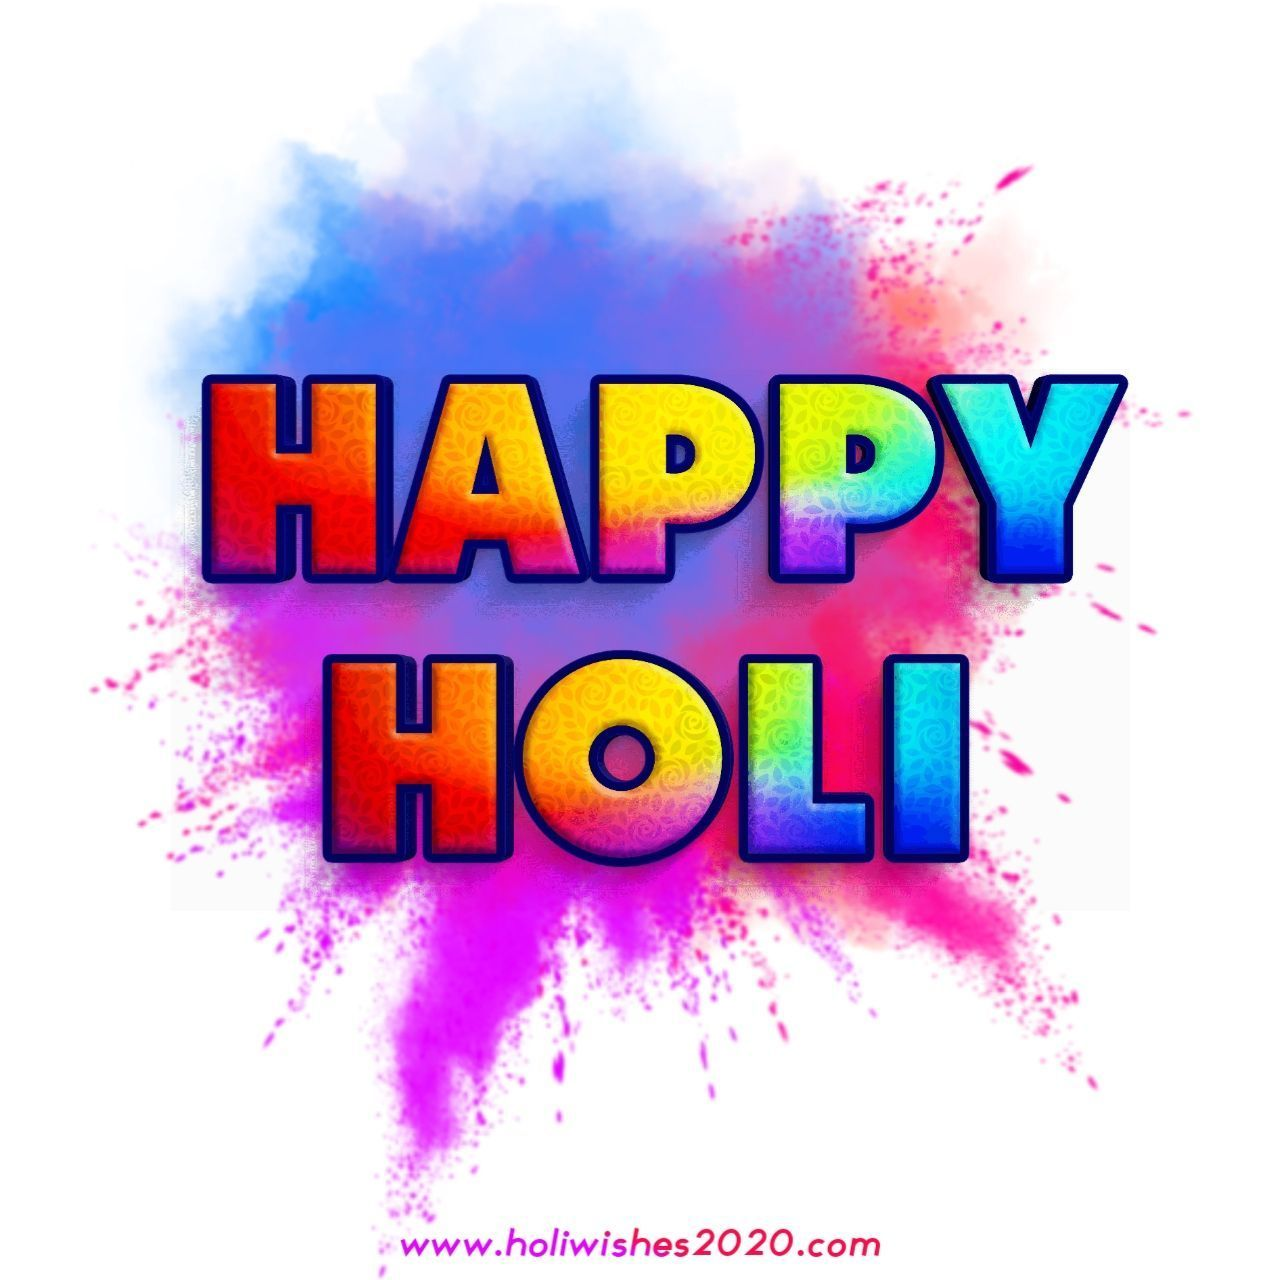 Happy Holi Images Gif Animated Gif Wallpaper Sticker For Whatsapp Facebook Speakdoor In 2021 Happy Holi Images Happy Holi Happy Holi Photo